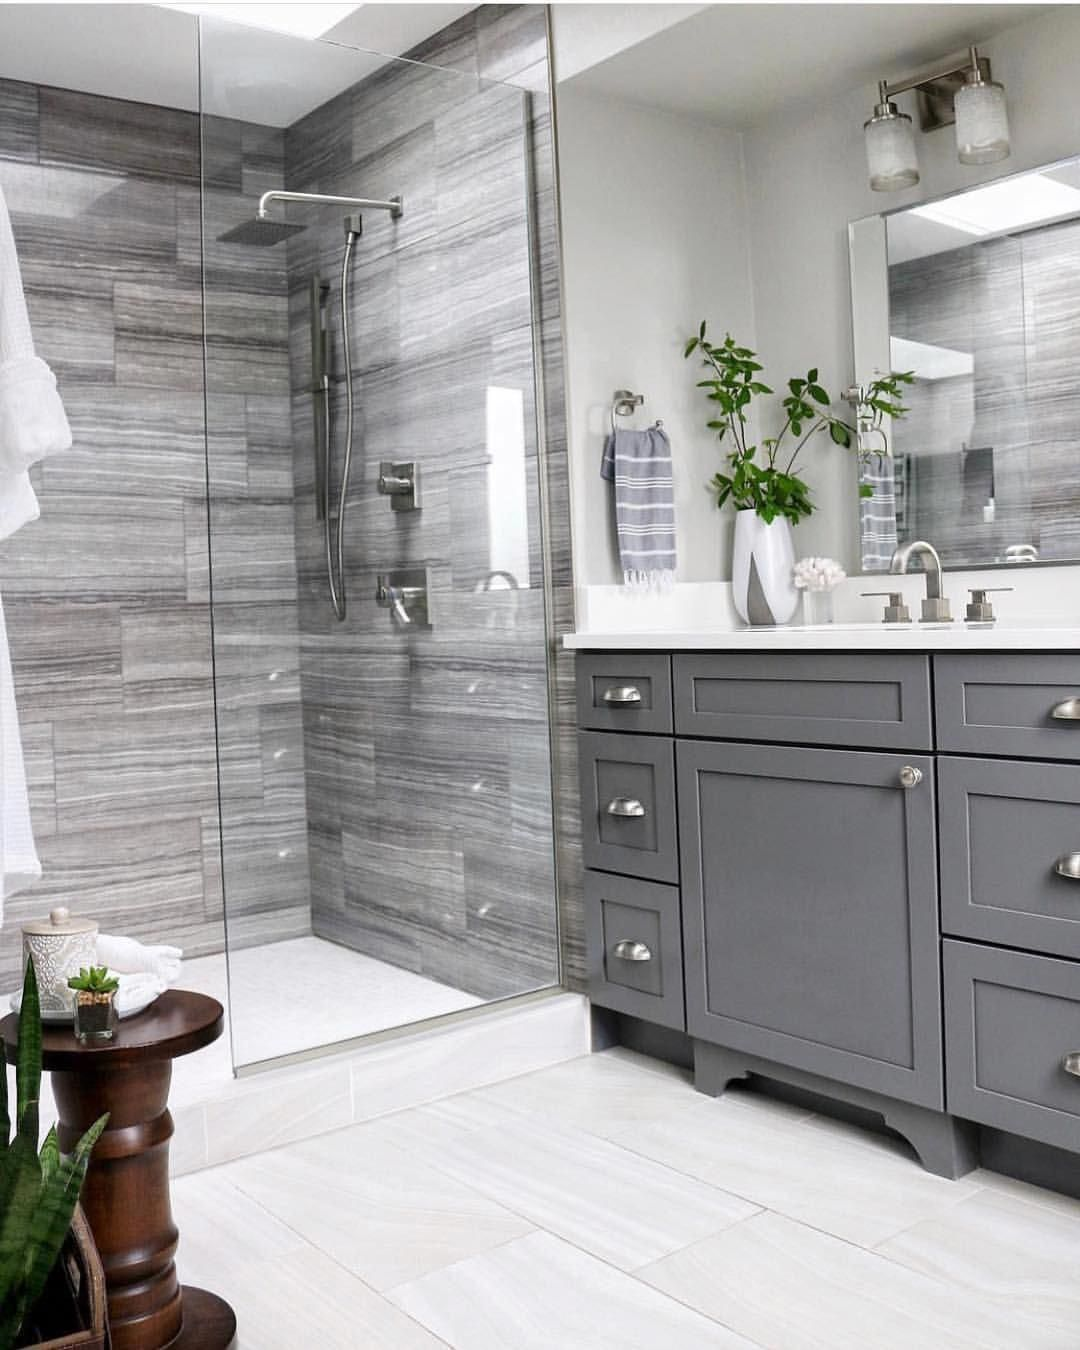 View Luxury Master Bathroom Design Inspiration From A Few Of Vigo S Partners Bathroom Design In 2020 Small Bathroom Remodel Double Vanity Bathroom Bathroom Layout